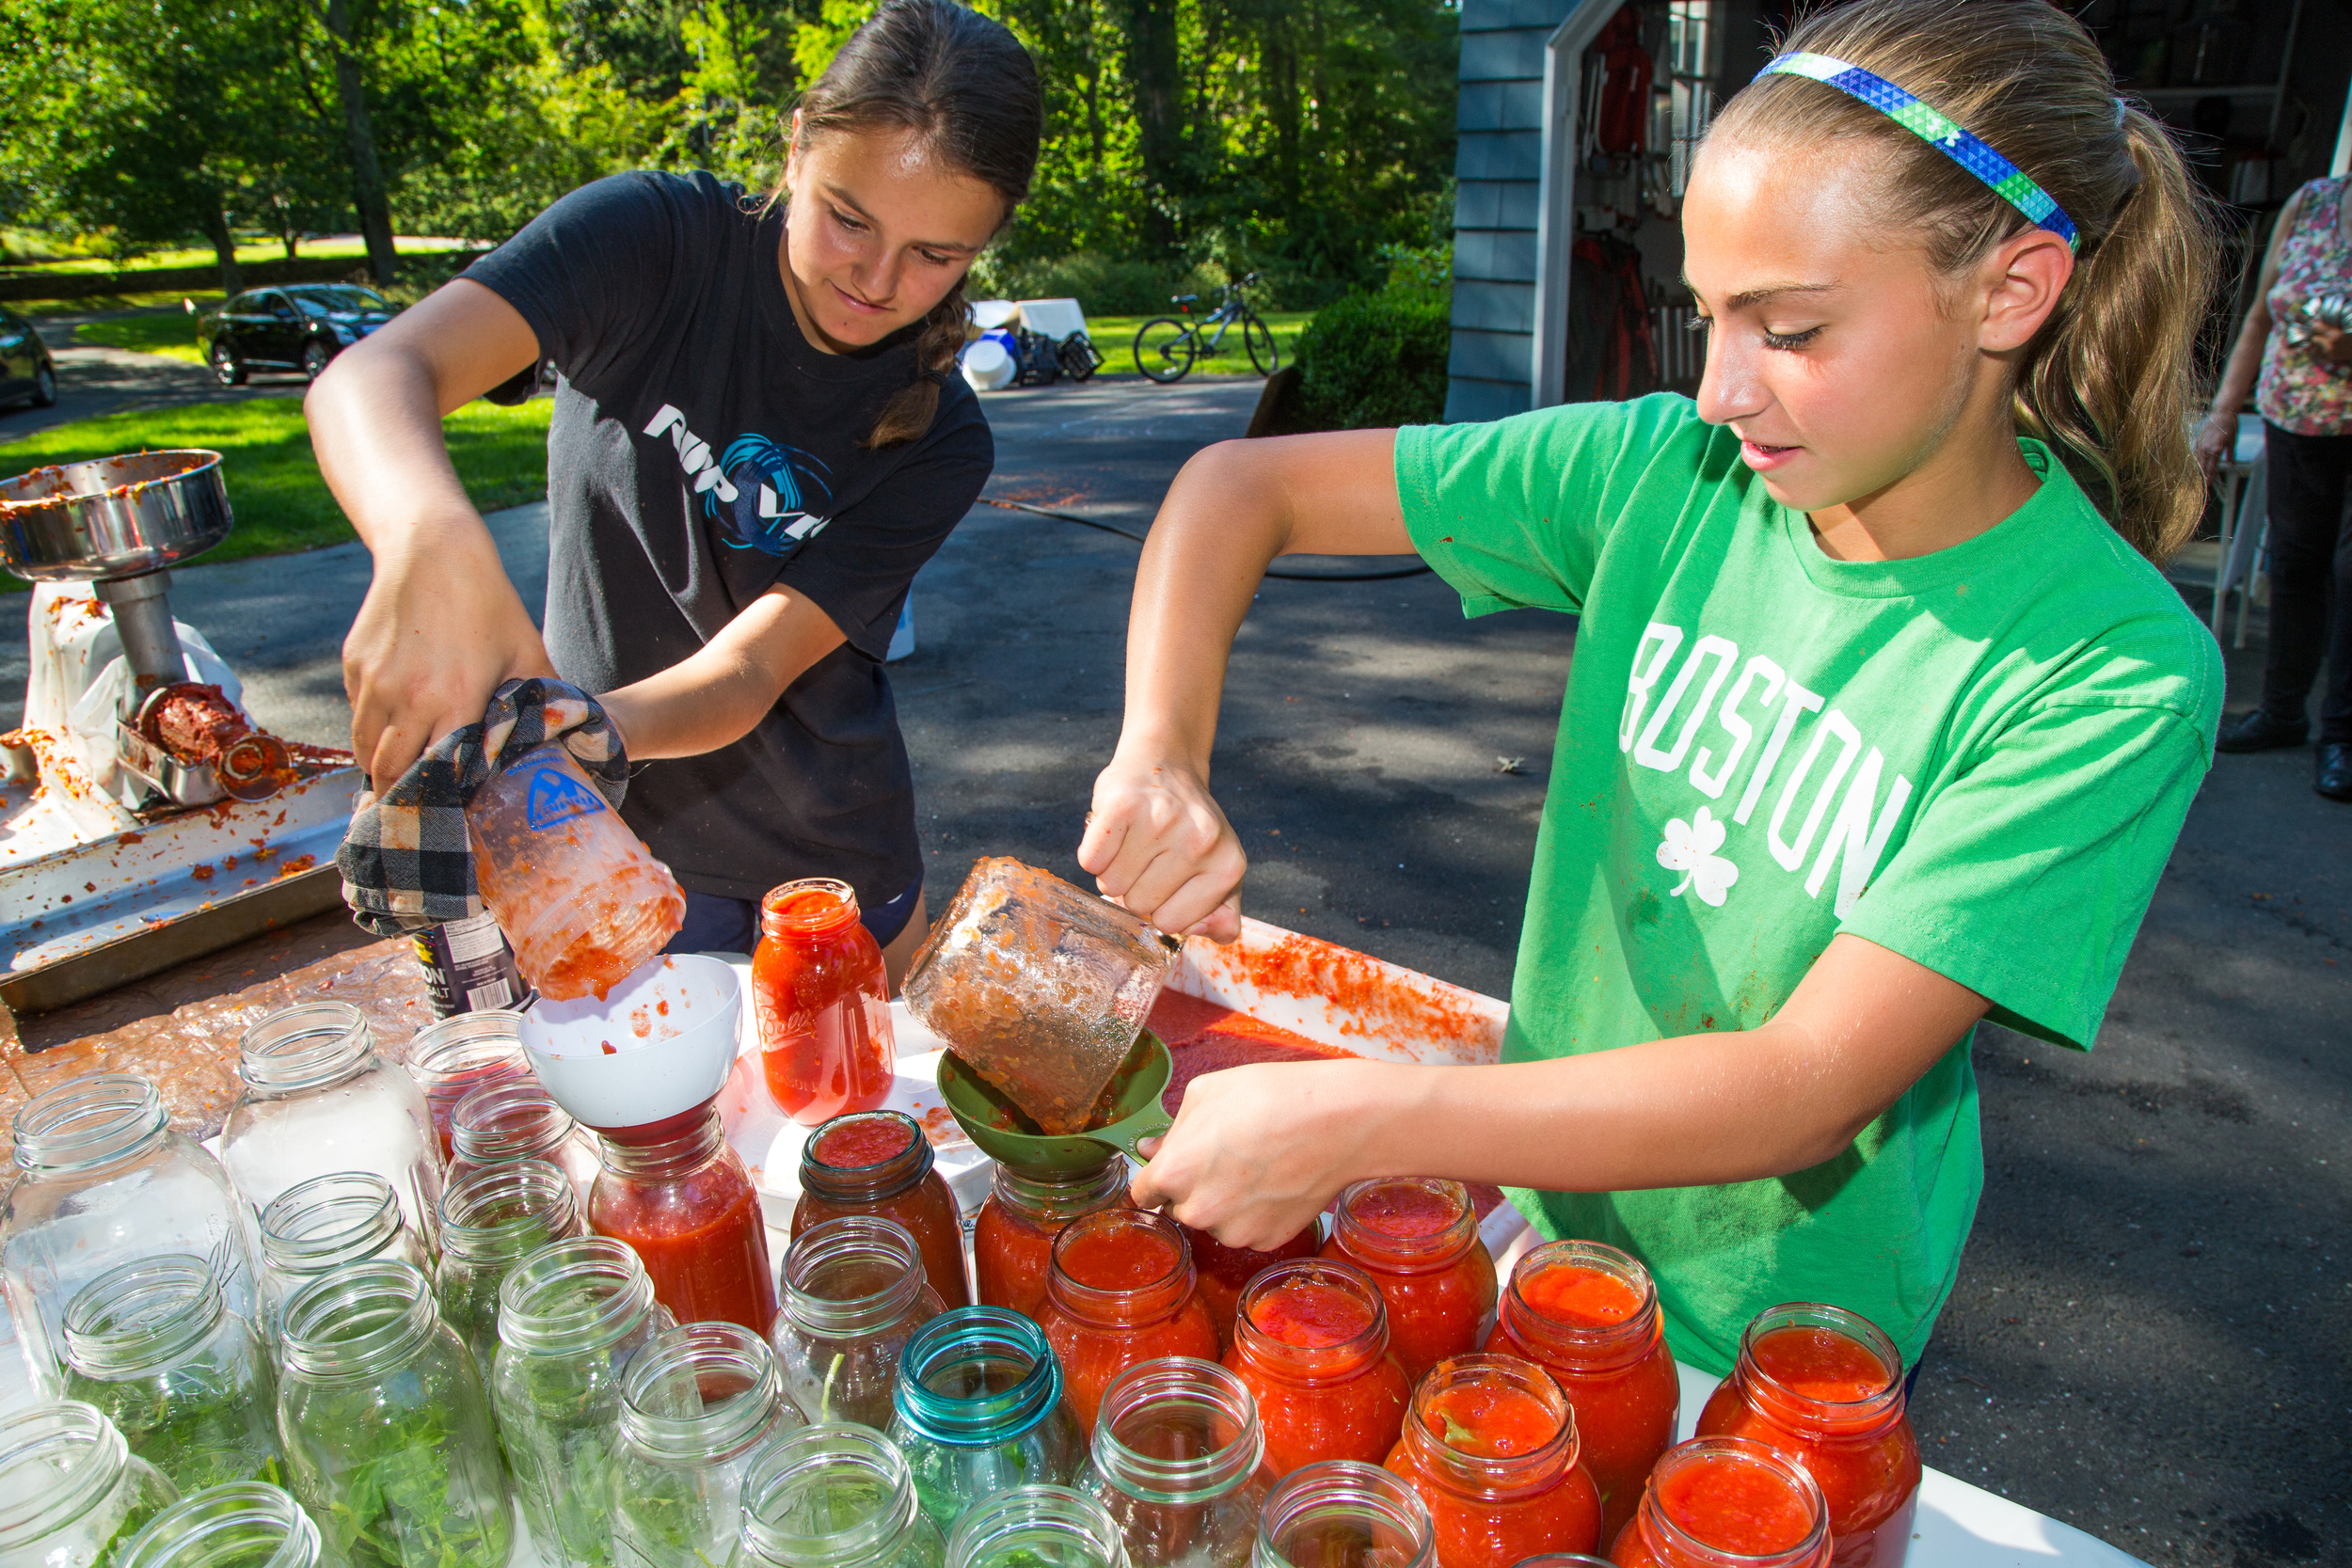 Two young girls 'doin tomatoes' in Wilton, Conn.